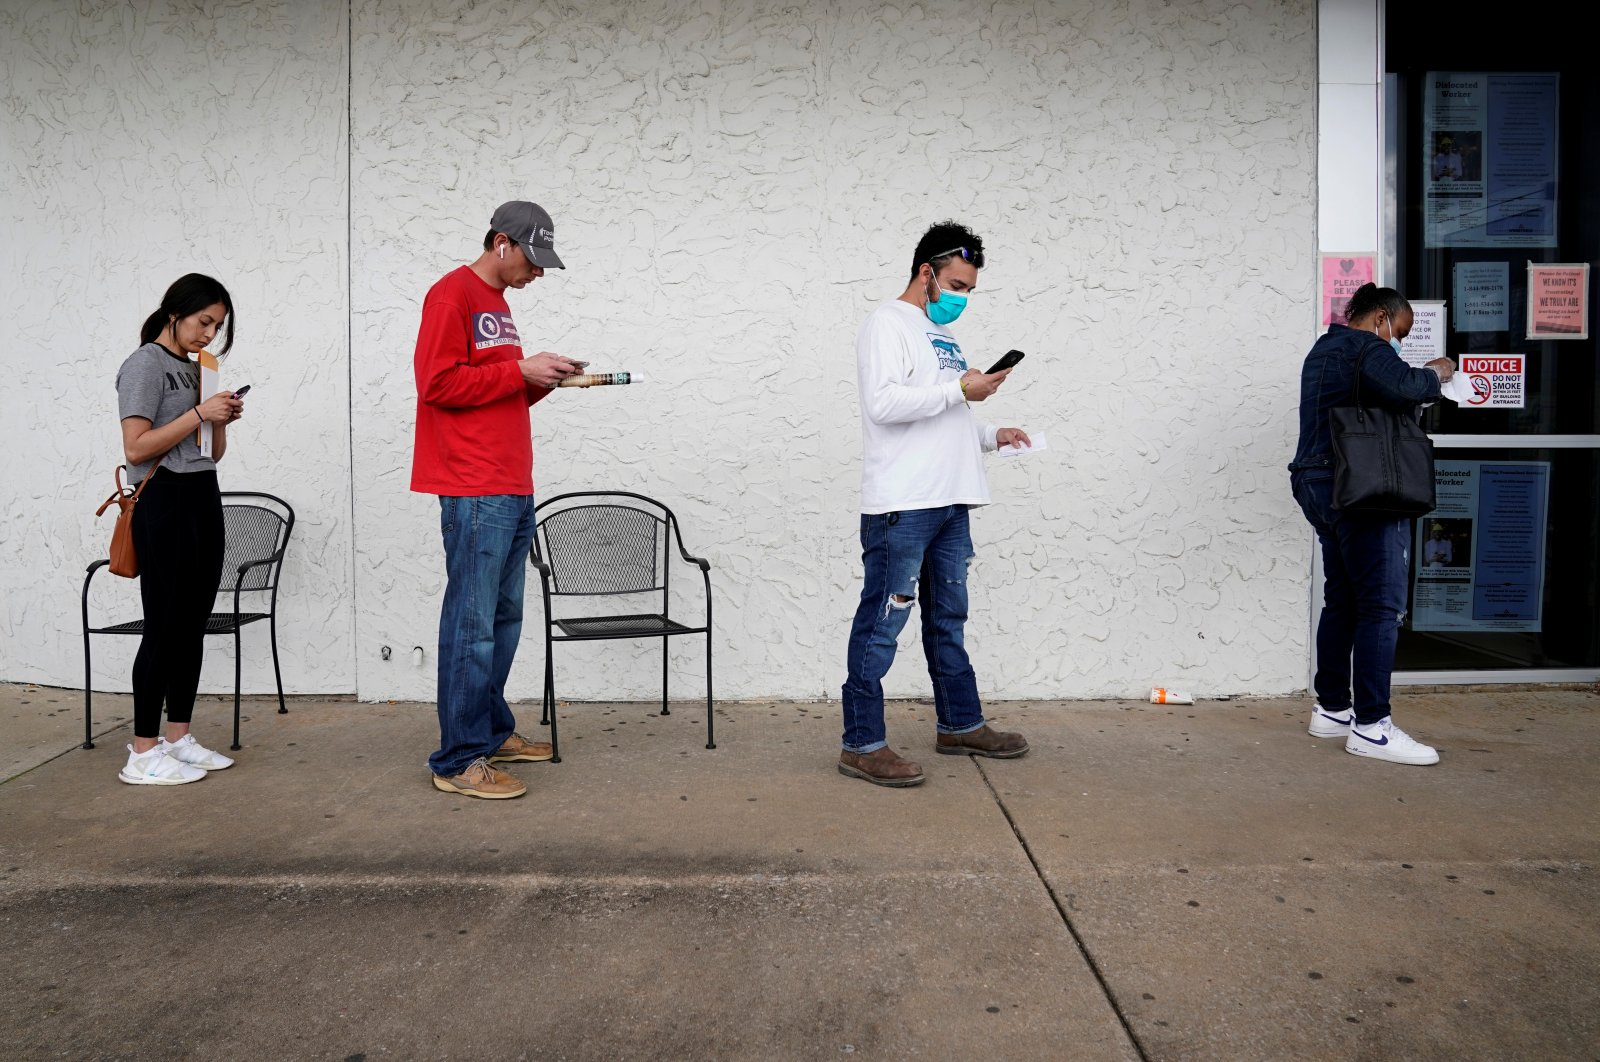 People who lost their jobs wait in line to file for unemployment following an outbreak of the coronavirus disease (COVID-19), at an Arkansas Workforce Center in Fayetteville, Arkansas, U.S. April 6, 2020. (Reuters Photo)